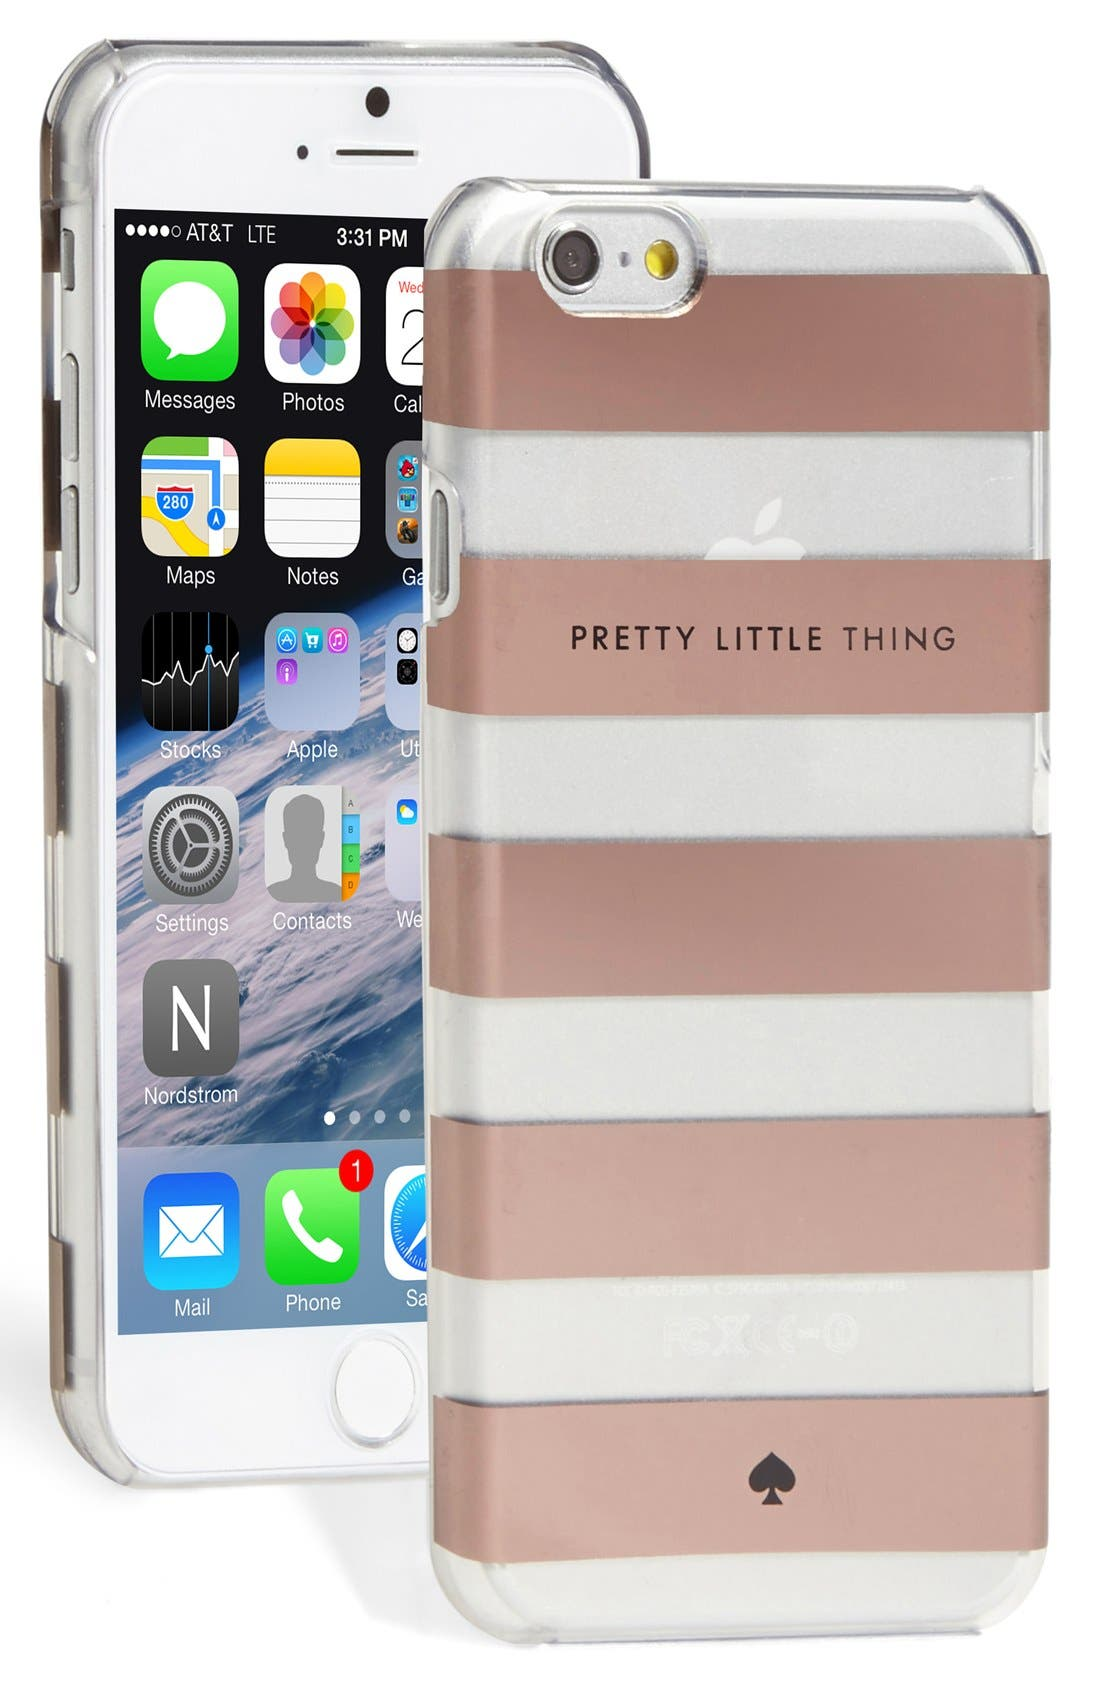 Main Image - kate spade new york 'pretty little thing' iPhone 6 case